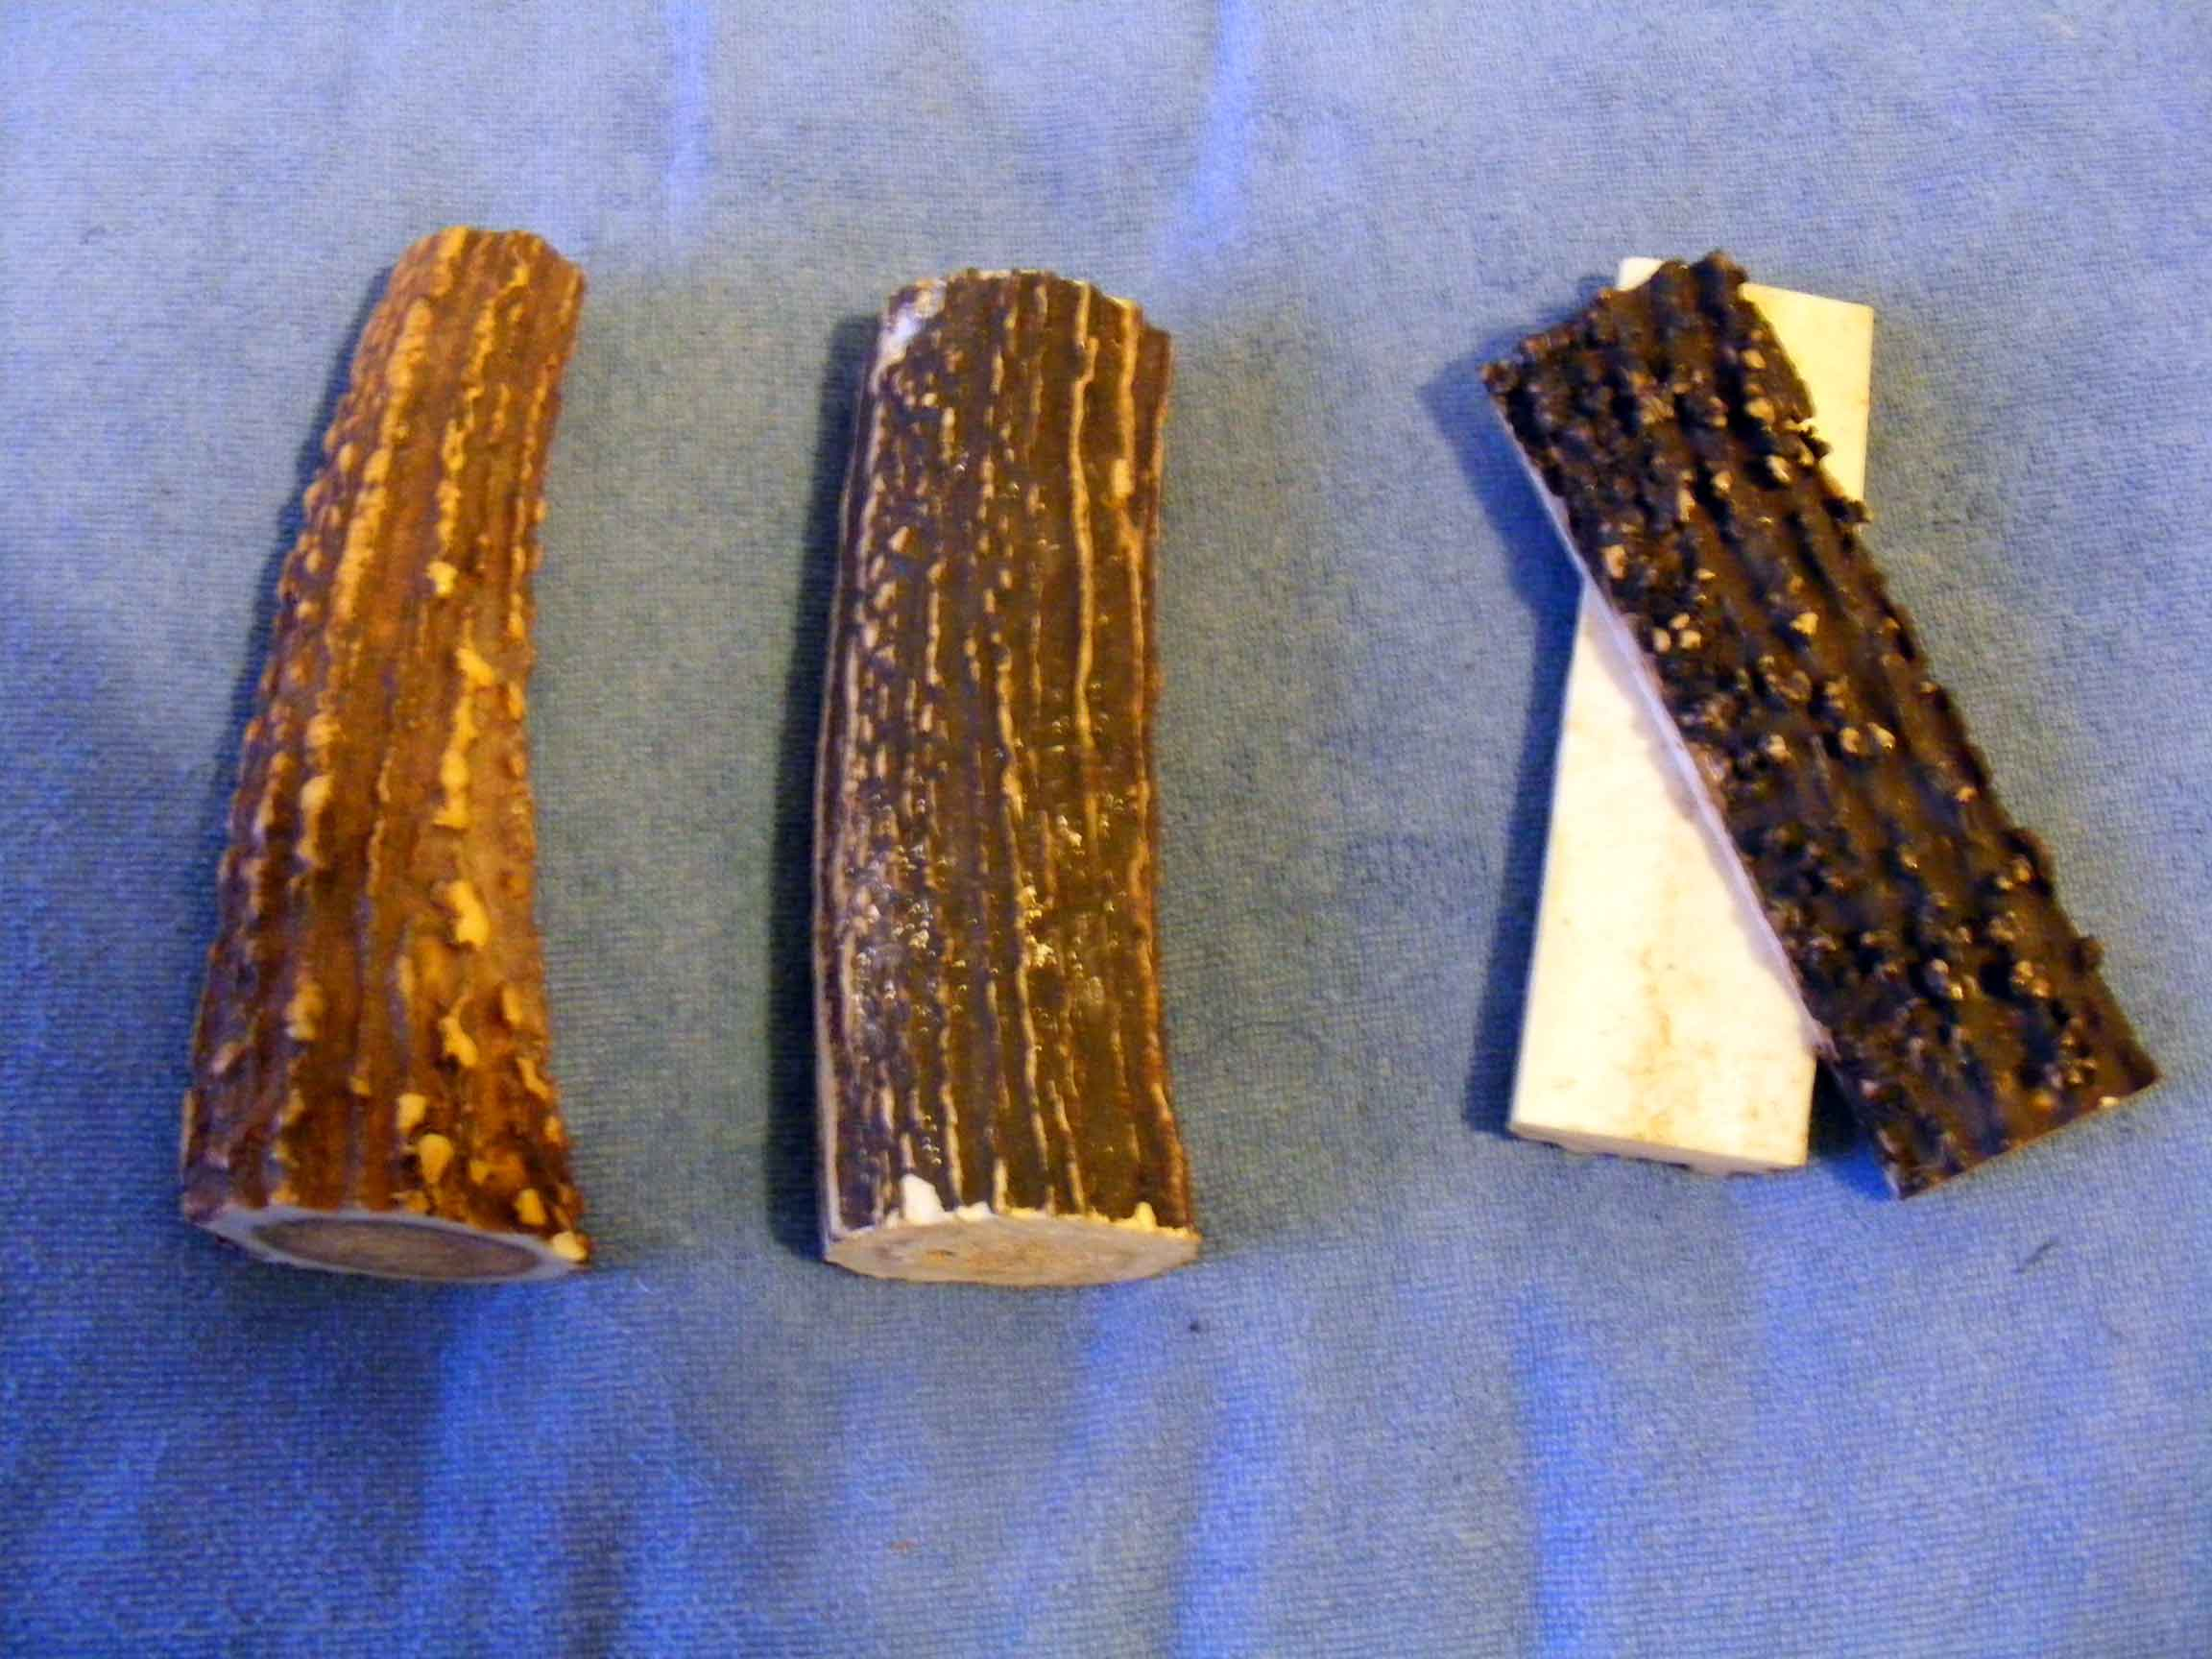 Frenchy's Custom Knives and Sticks for a fine selection of